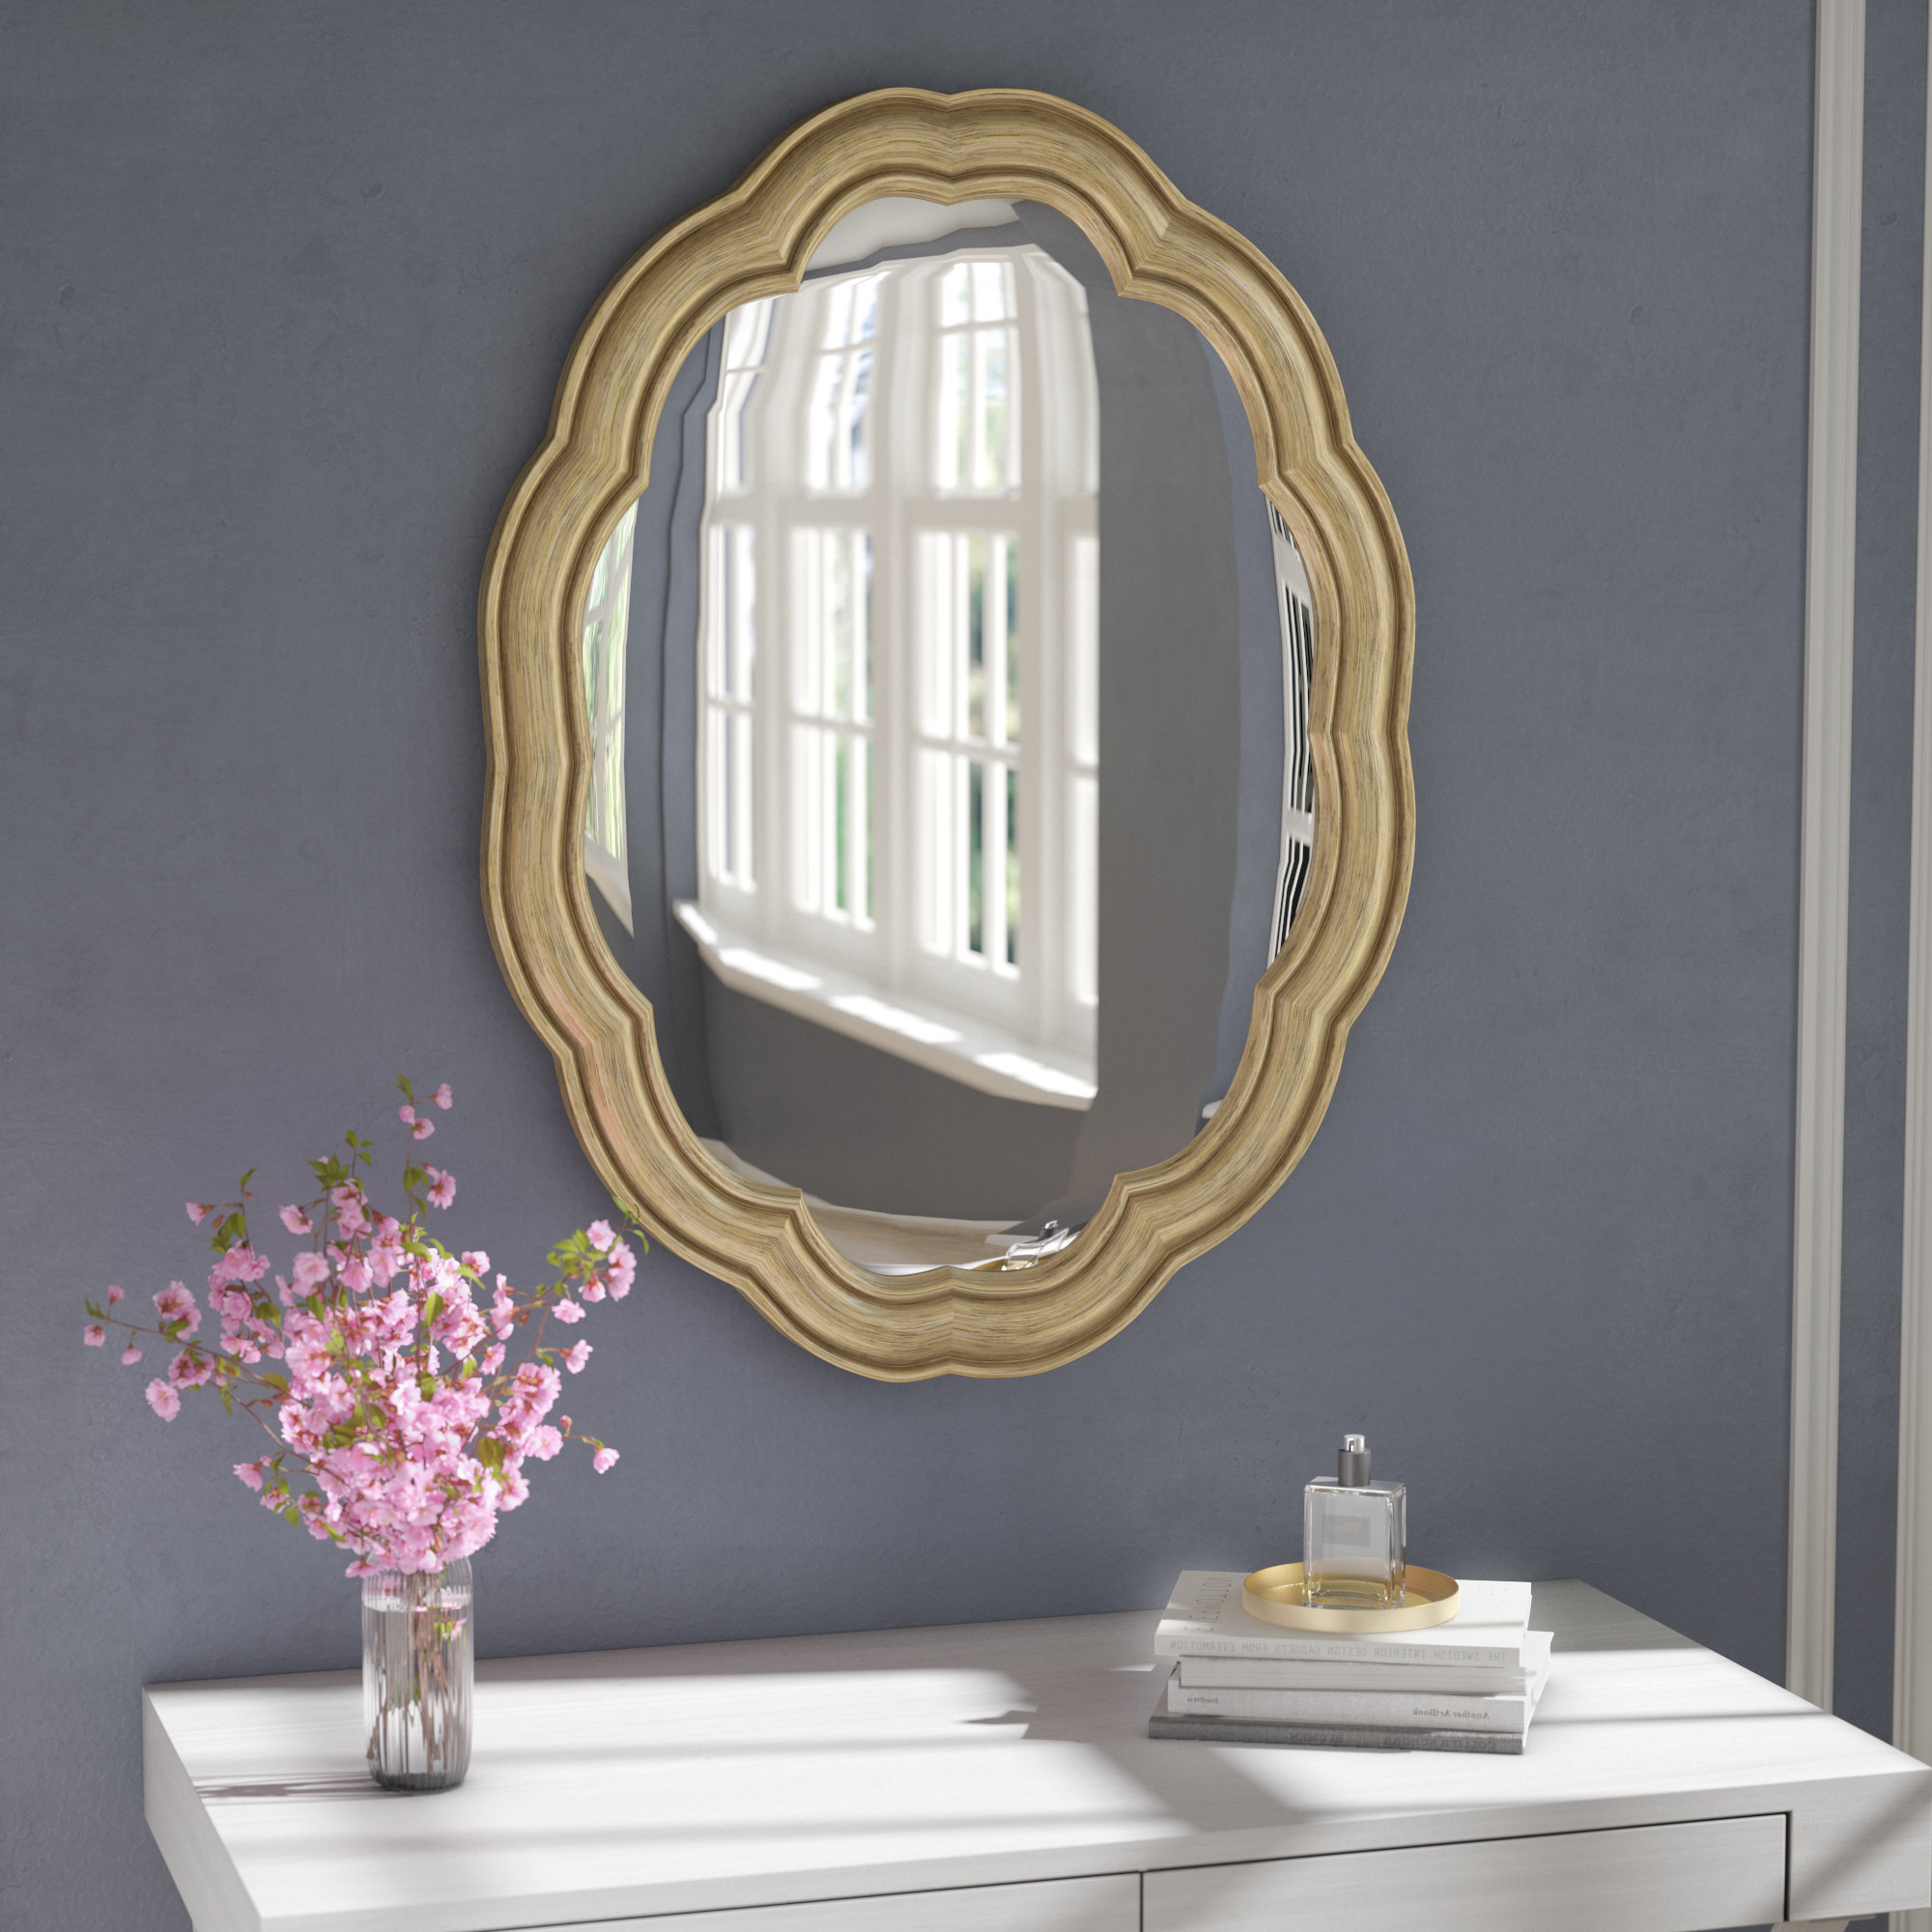 Glam Oval Accent Wall Mirror Throughout Most Up To Date Broadmeadow Glam Accent Wall Mirrors (View 3 of 20)